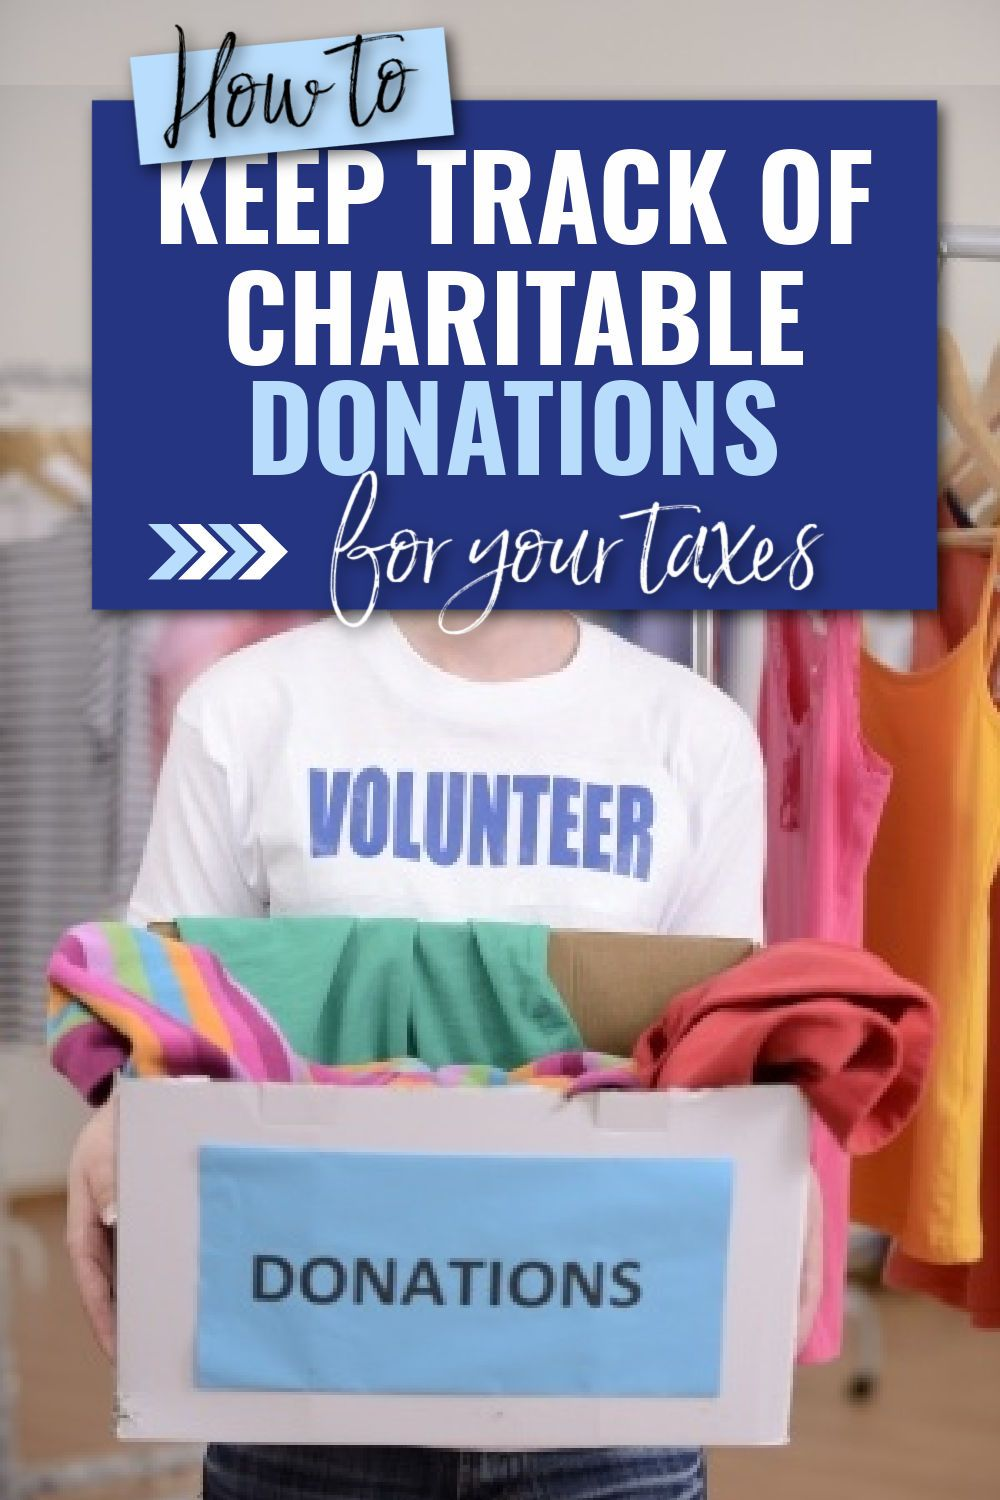 How To Keep Track Of Your Charitable Donations For Taxes In 2021 Charitable Donations Family Financial Planning Financial Planning For Couples Keep track of charitable donations